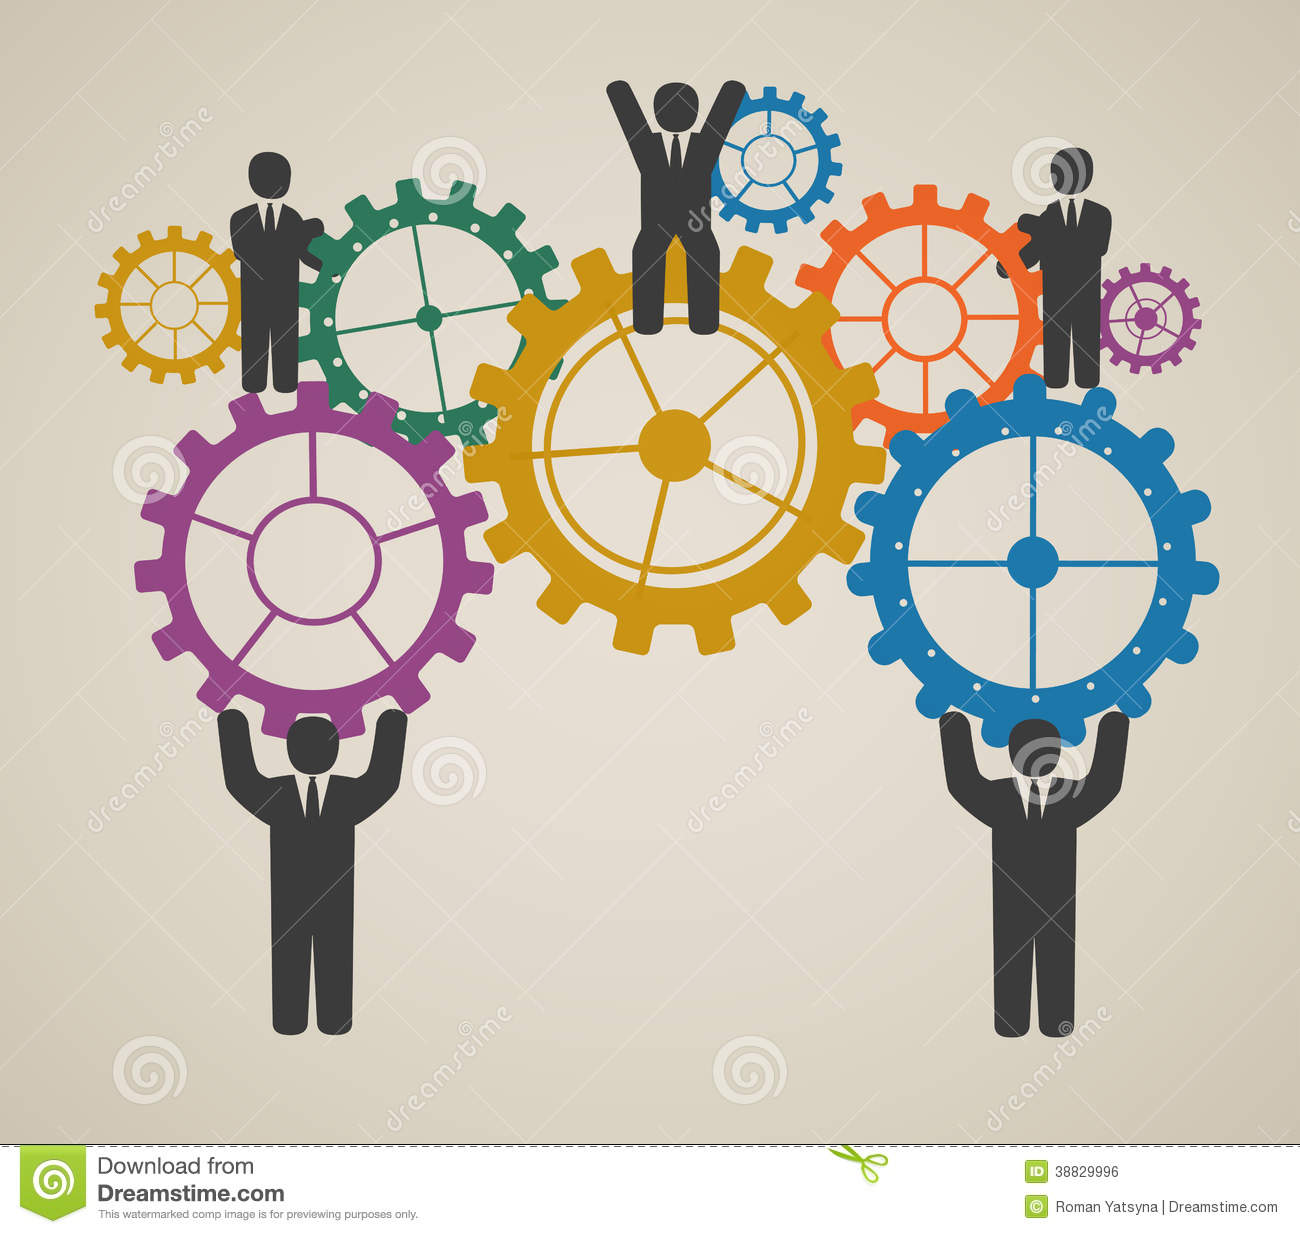 workforce team working business people in motion stock vector workforce team working business people in motion